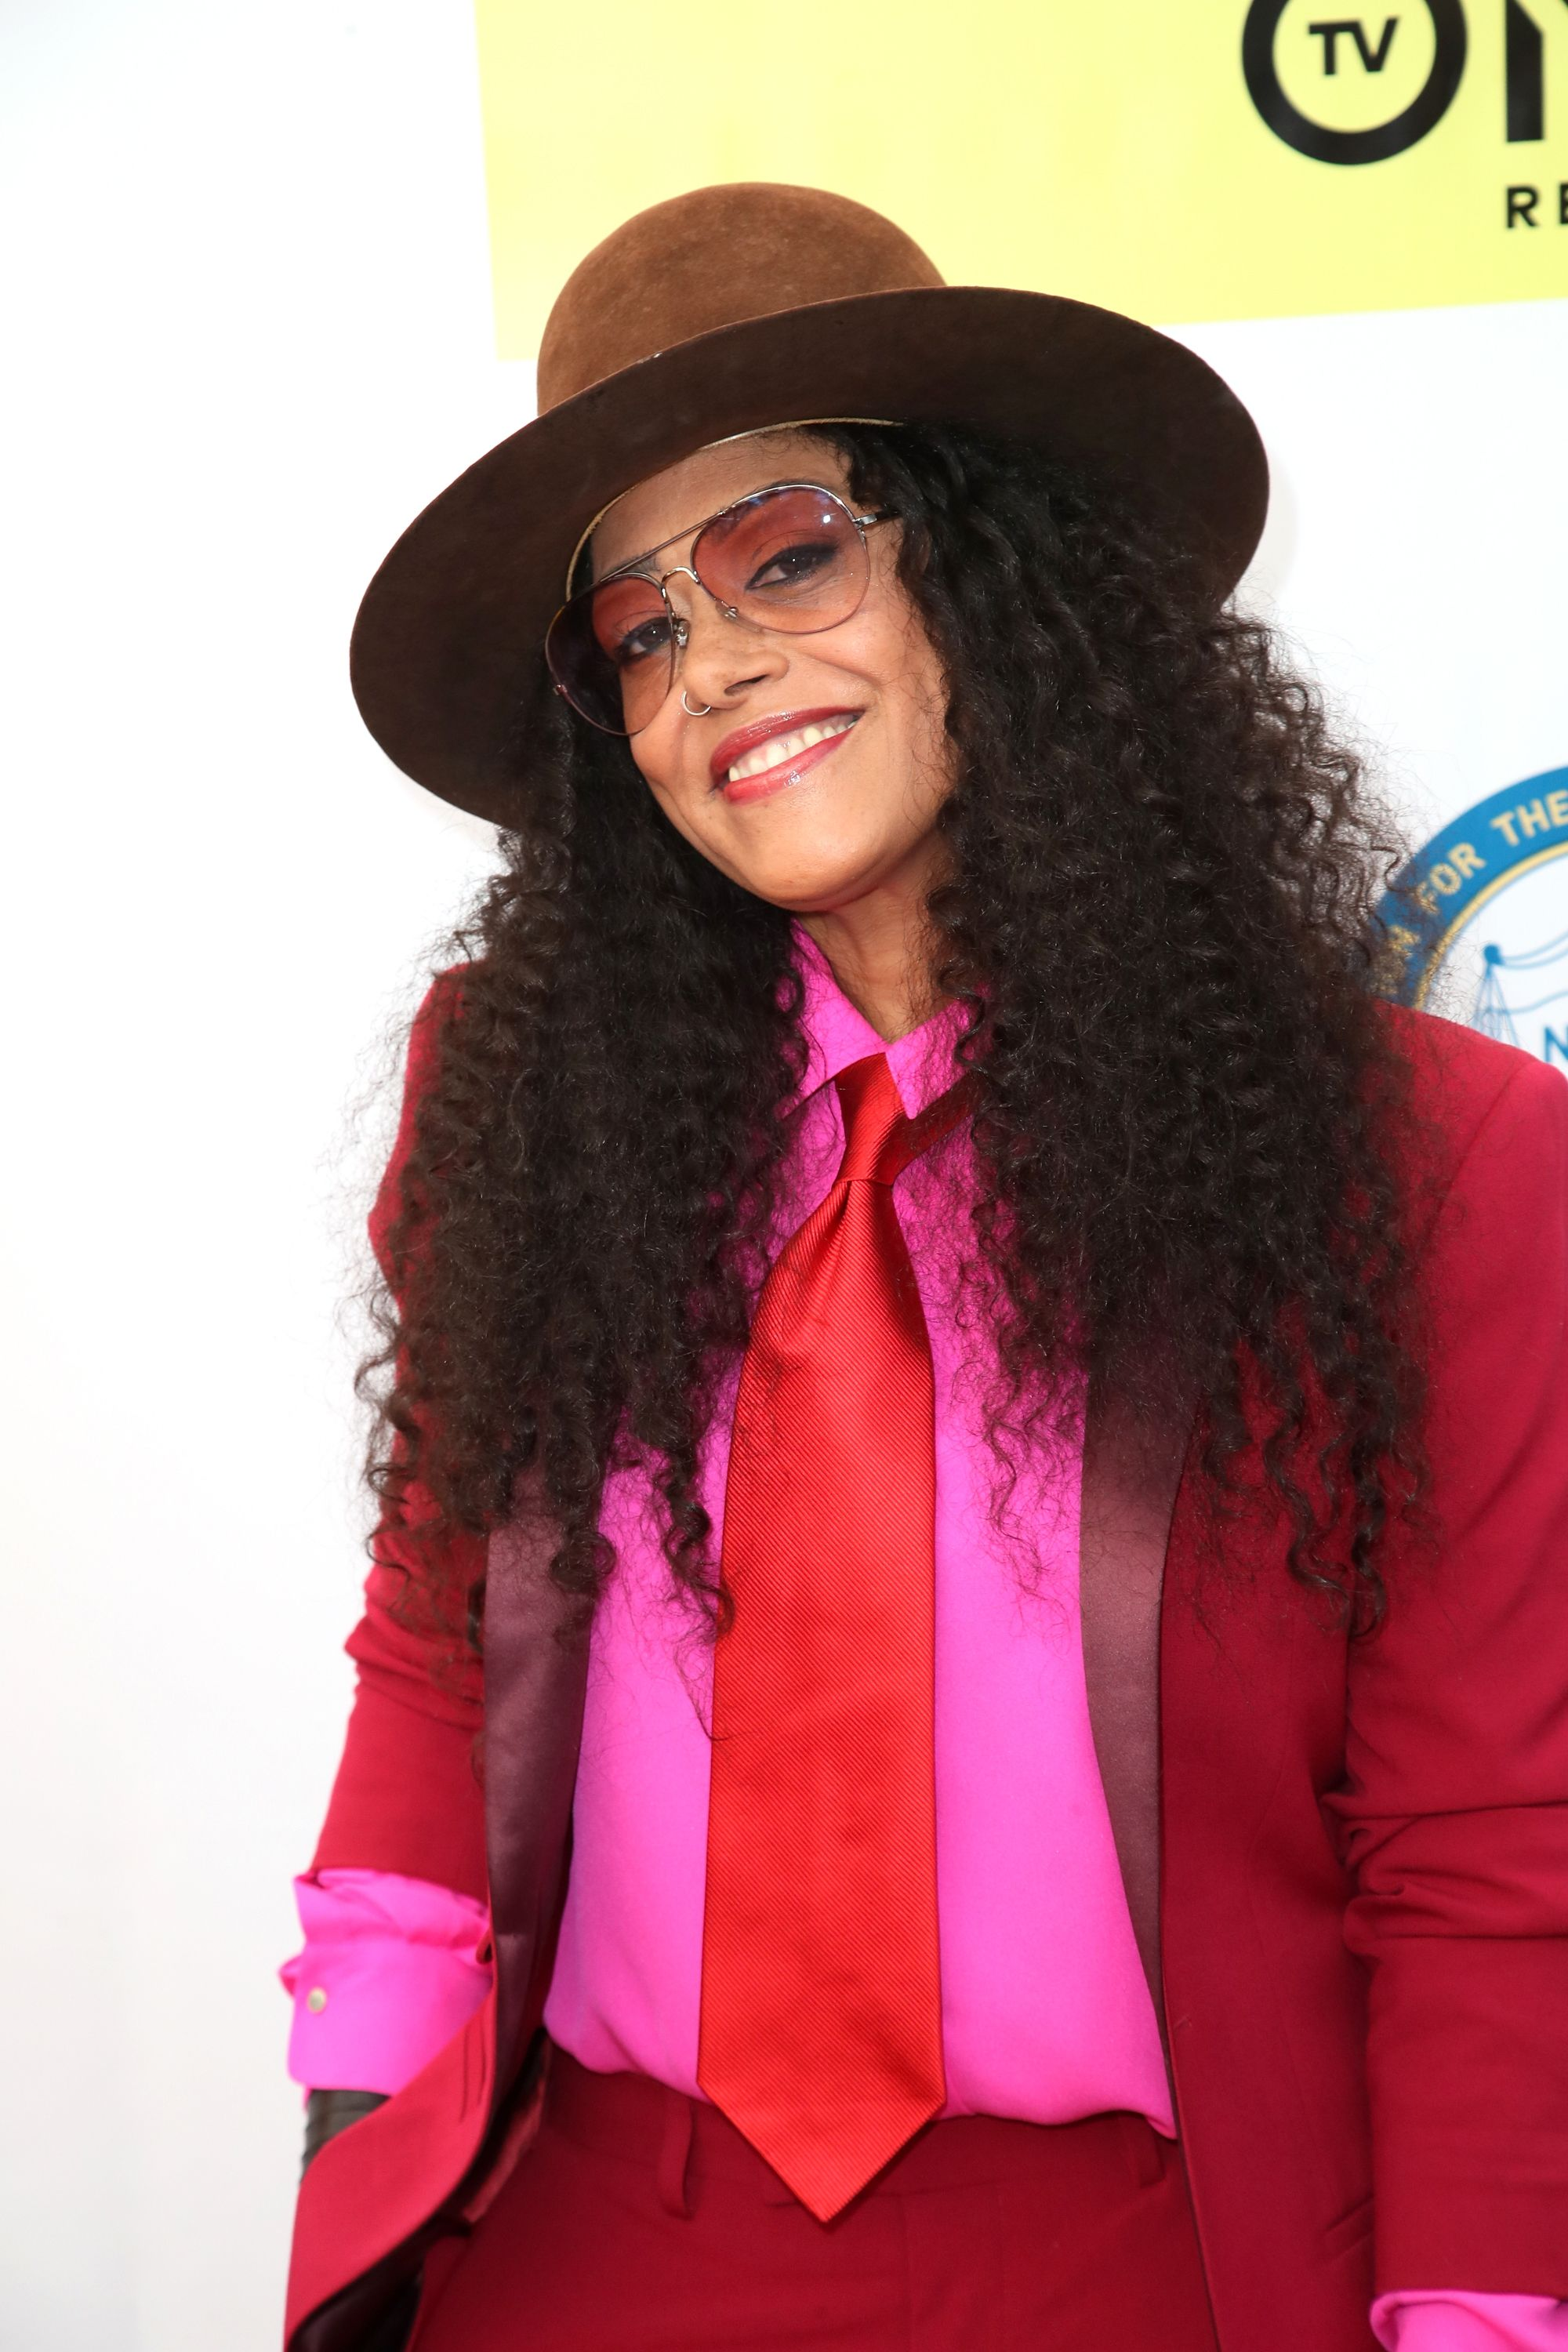 Cree Summer attends a red carpet event | Source: Getty Images/GlobalImagesUkraine